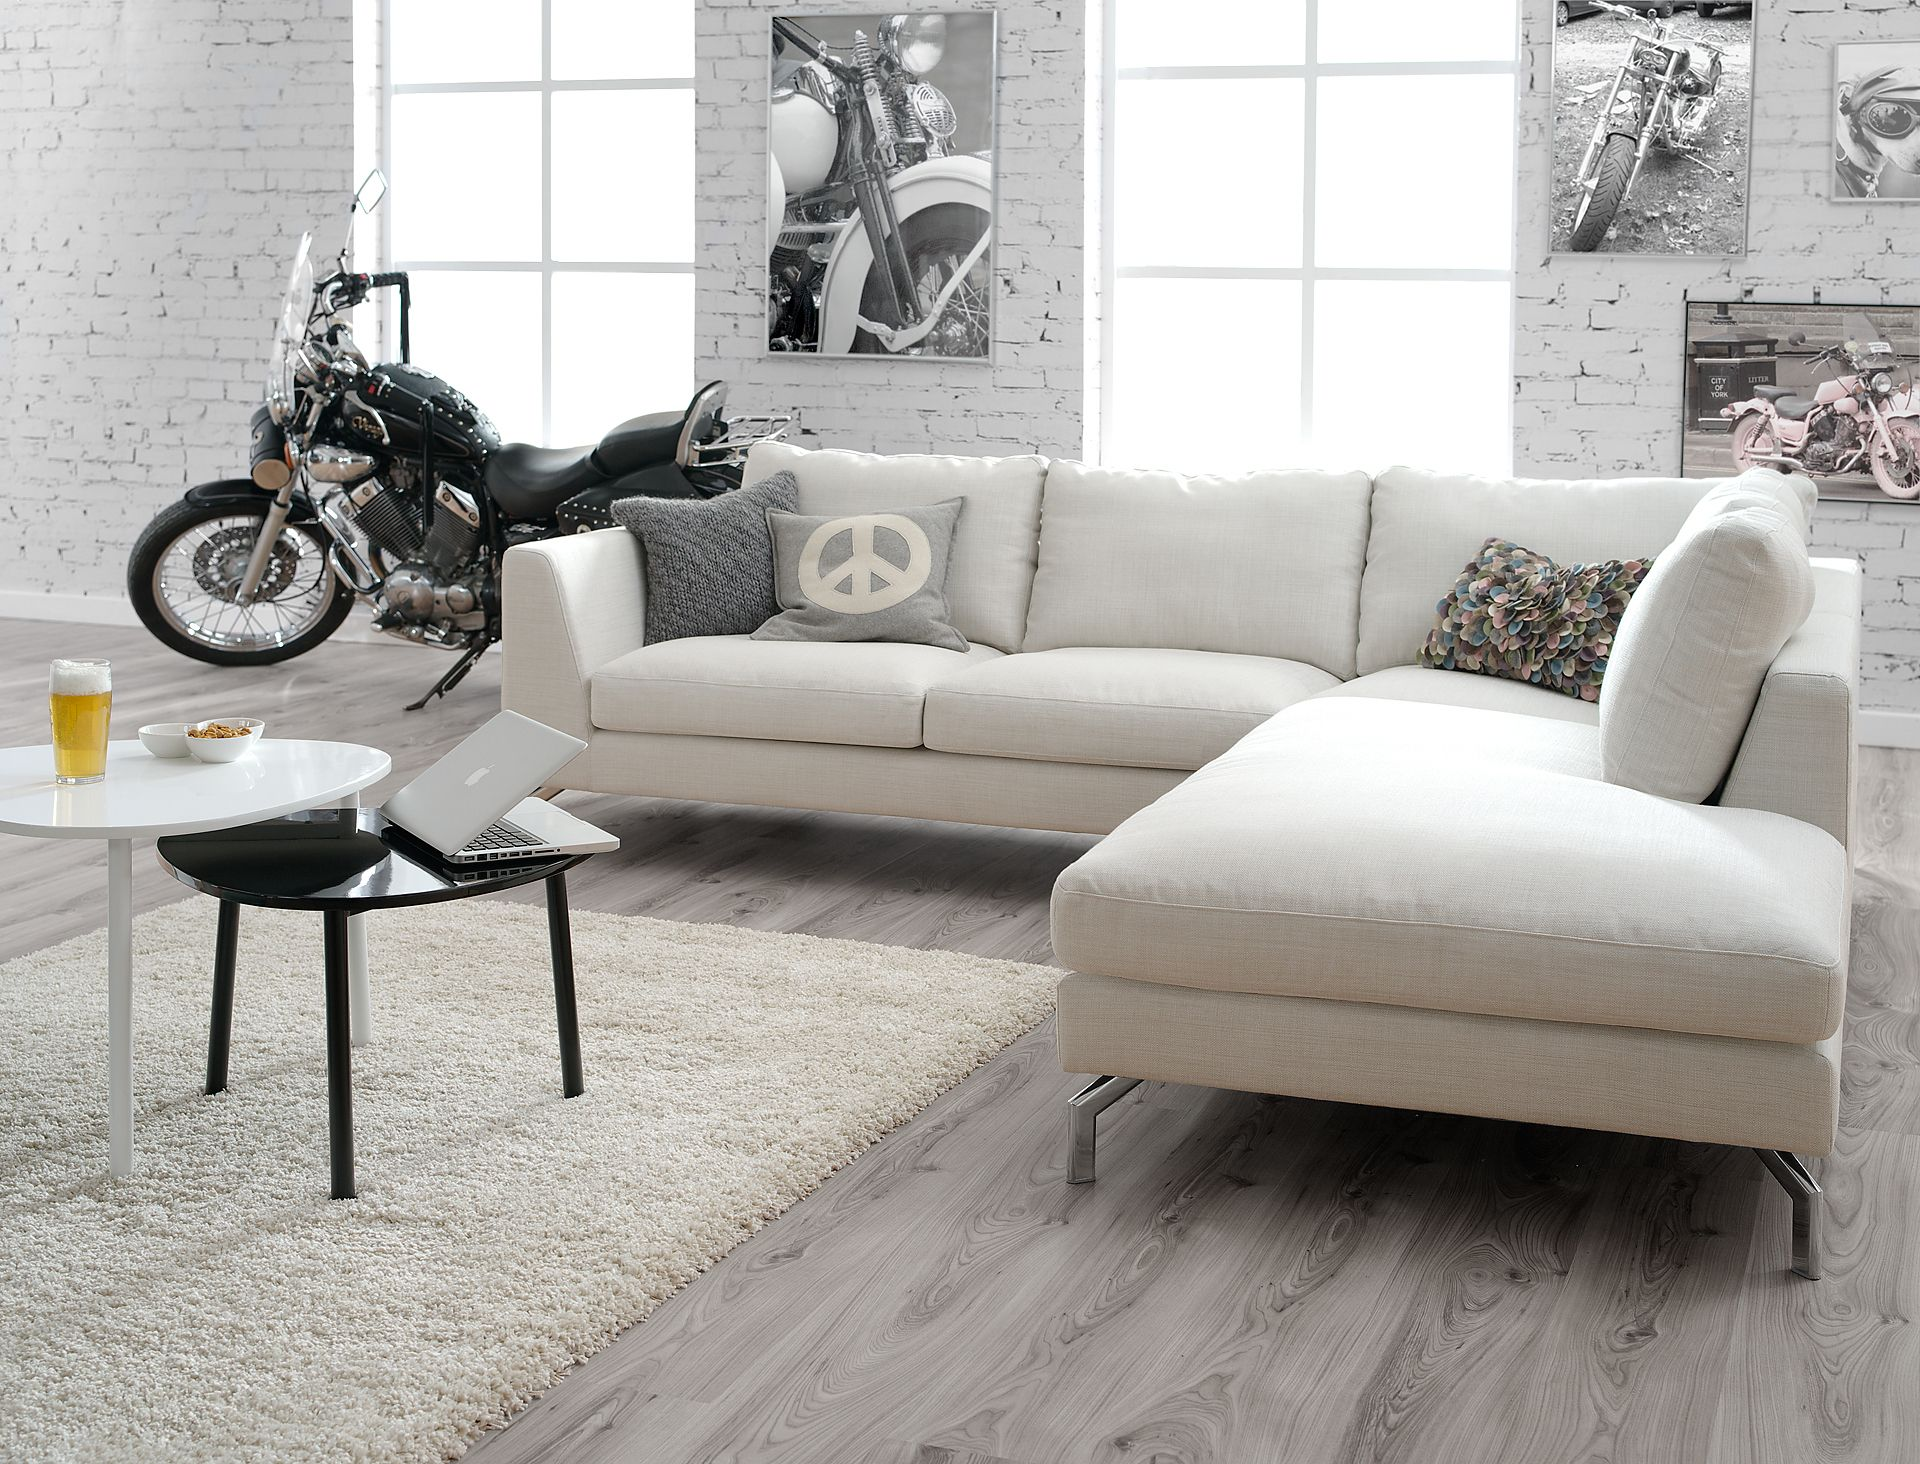 Scandinavian Furniture San Diego L Shape Sofa Scandinavian Furniture Home Inspirations Sofa